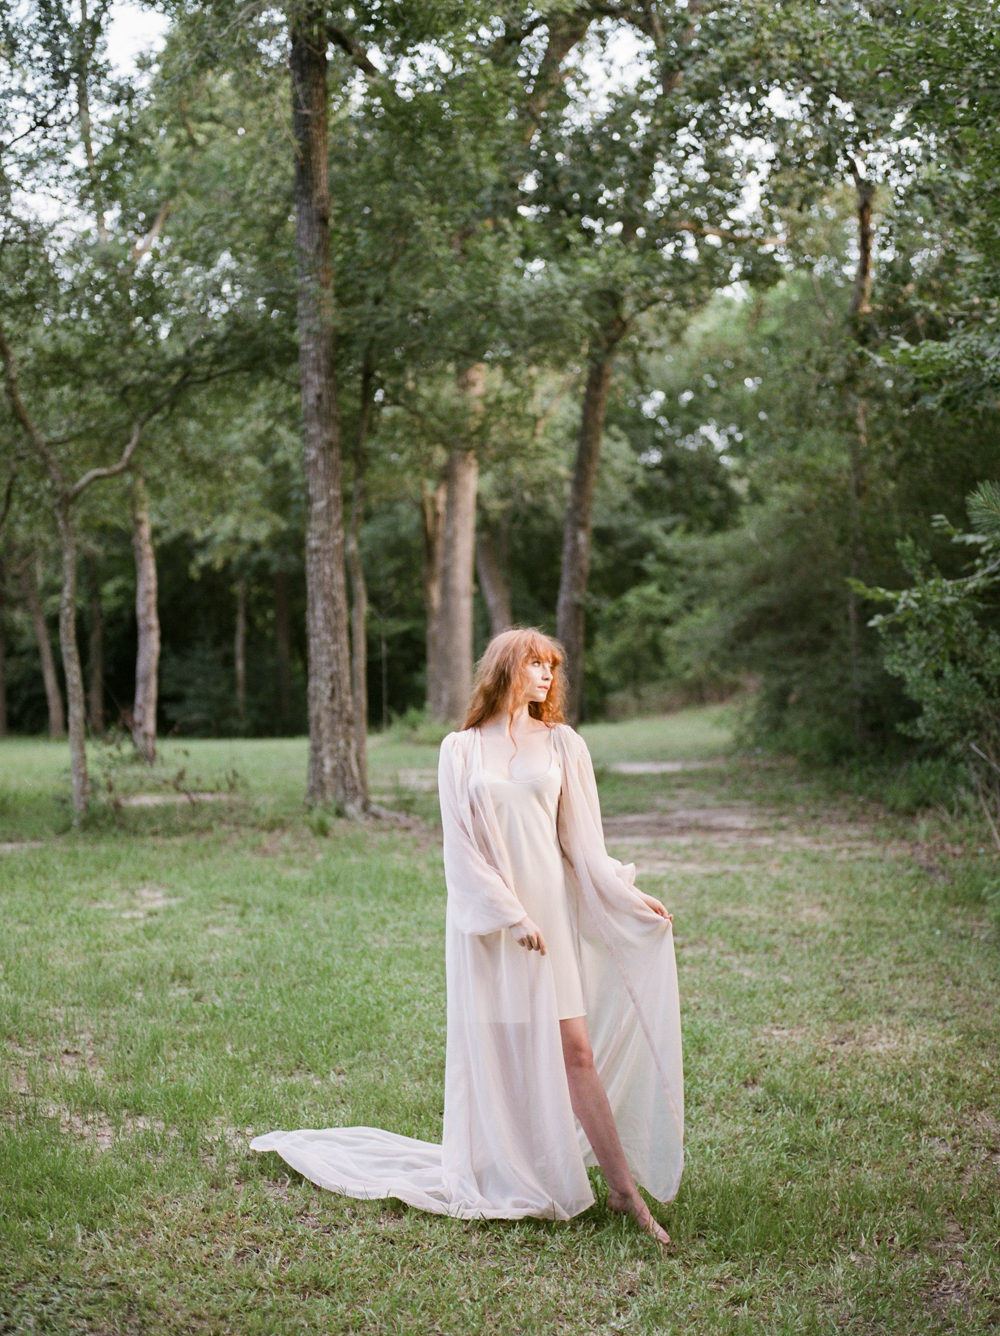 christine-gosch-summer-boudoir-session-blush-robe-pink-fond-of-silk-fujifilm-pentax645n-canonAE1-the-find-lab-texas-film-photographer-houston-boudoir-photography-fine-art03.jpg